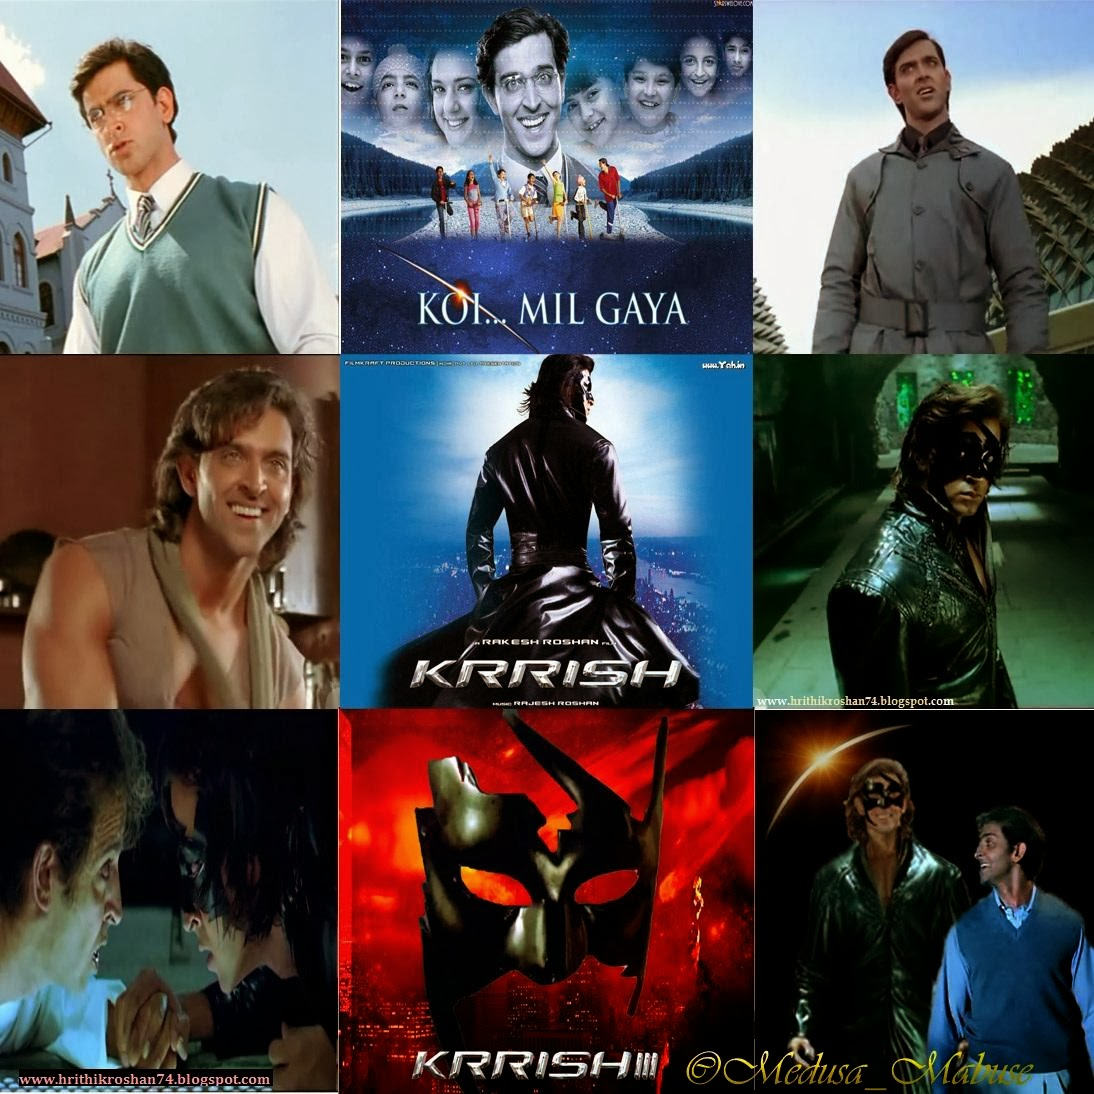 download free photos, wallpapers: krrish 3 free hd wallpapers and movies